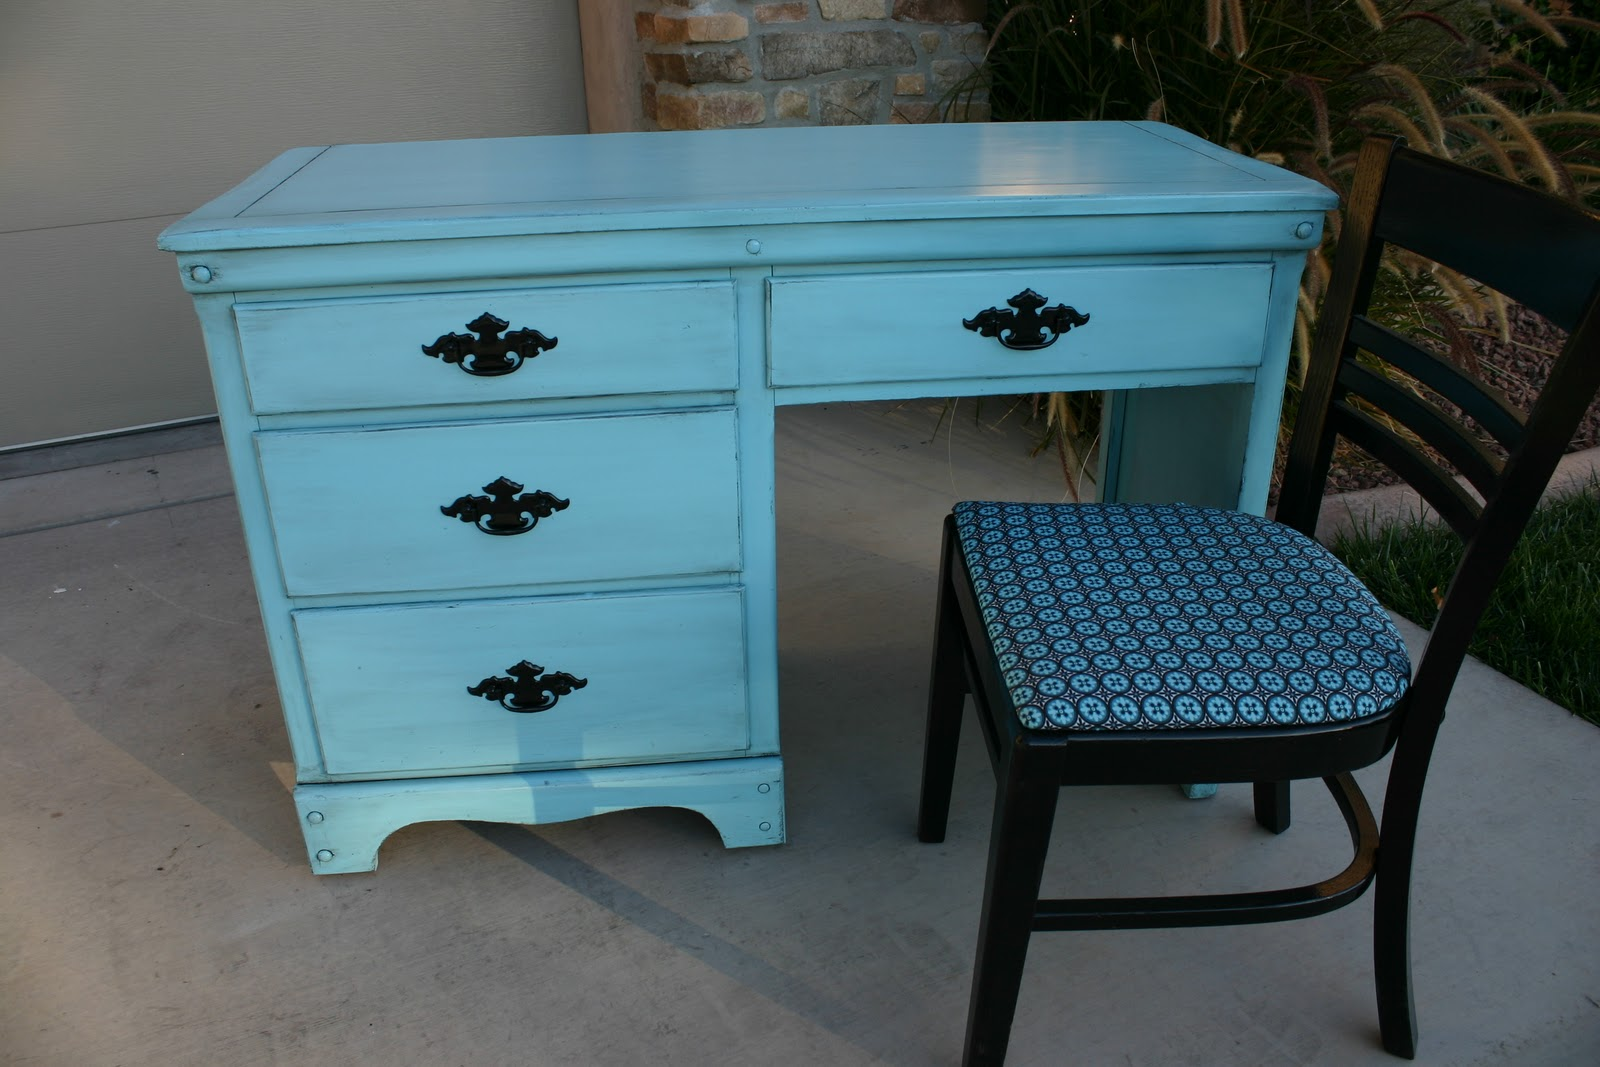 Desk Chair Teal 24 7 Office Chairs Doubletake Decor Bright And